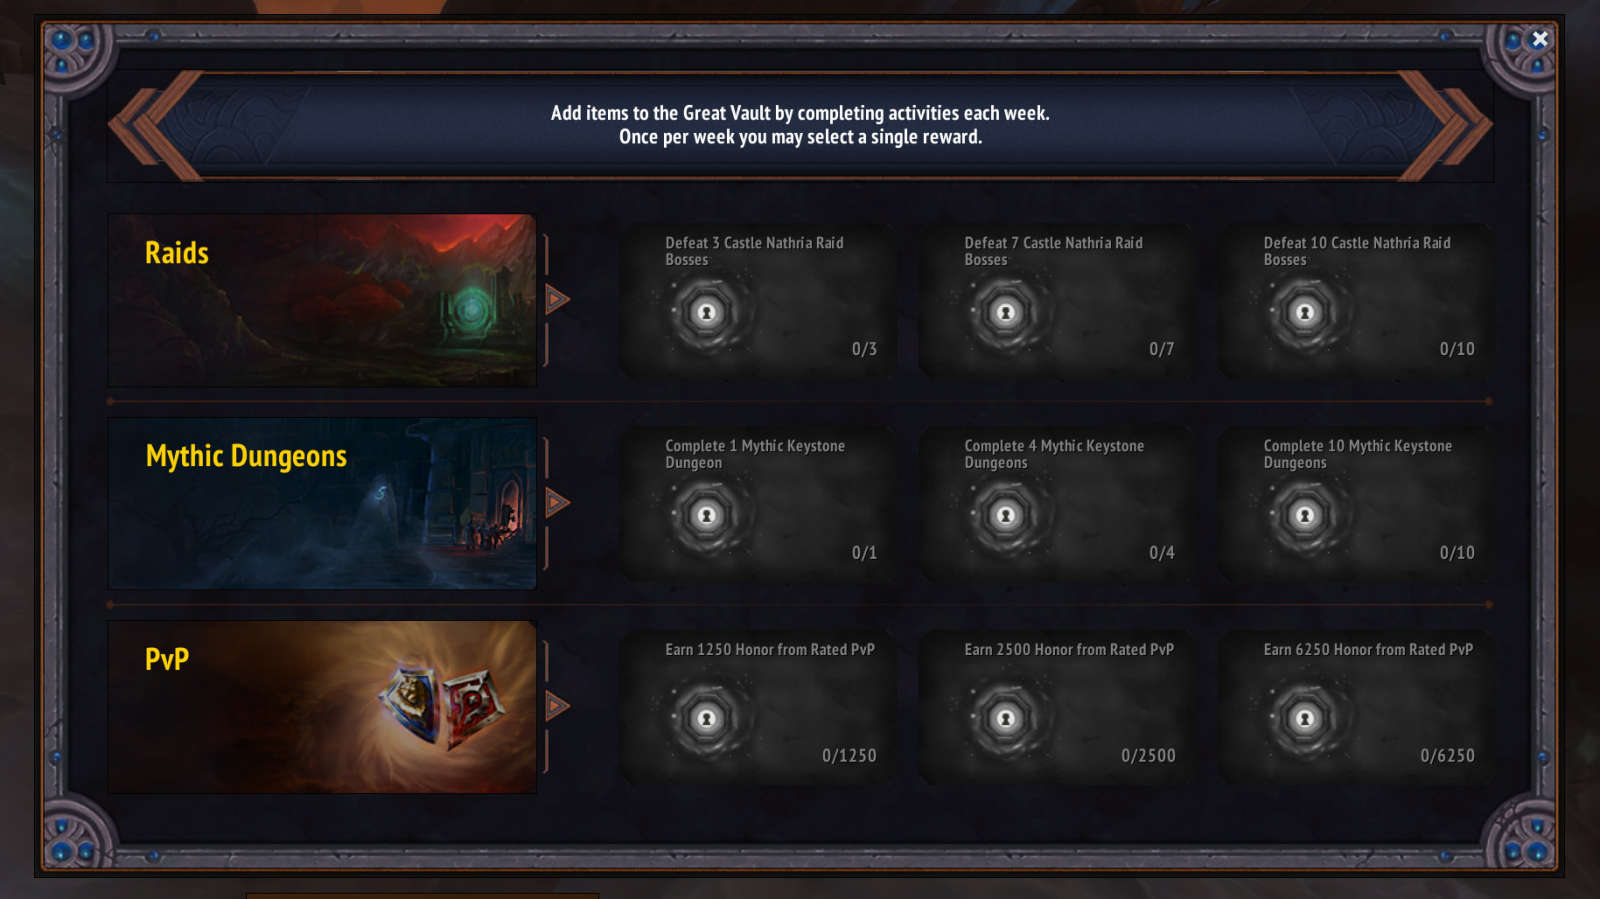 Simulate 'World of Warcraft' to Find the Best Gear Upgrades